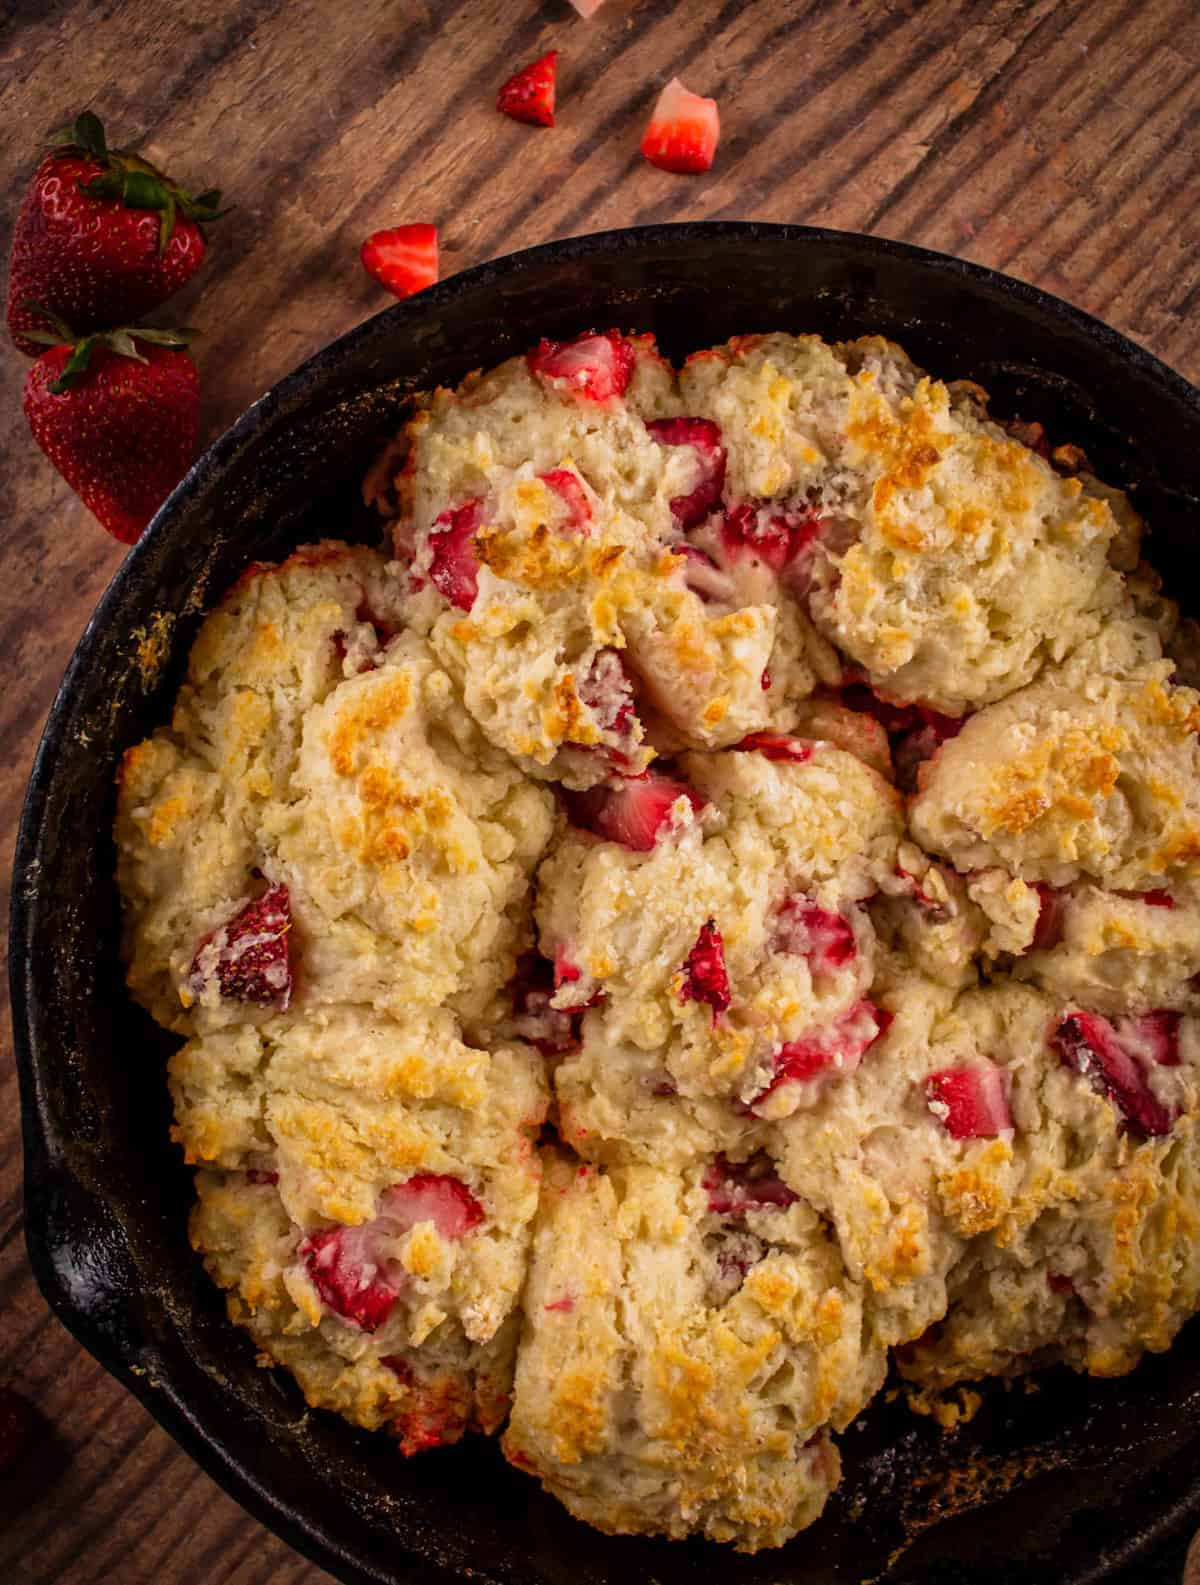 freshly baked biscuits with strawberries in a cast iron skillet